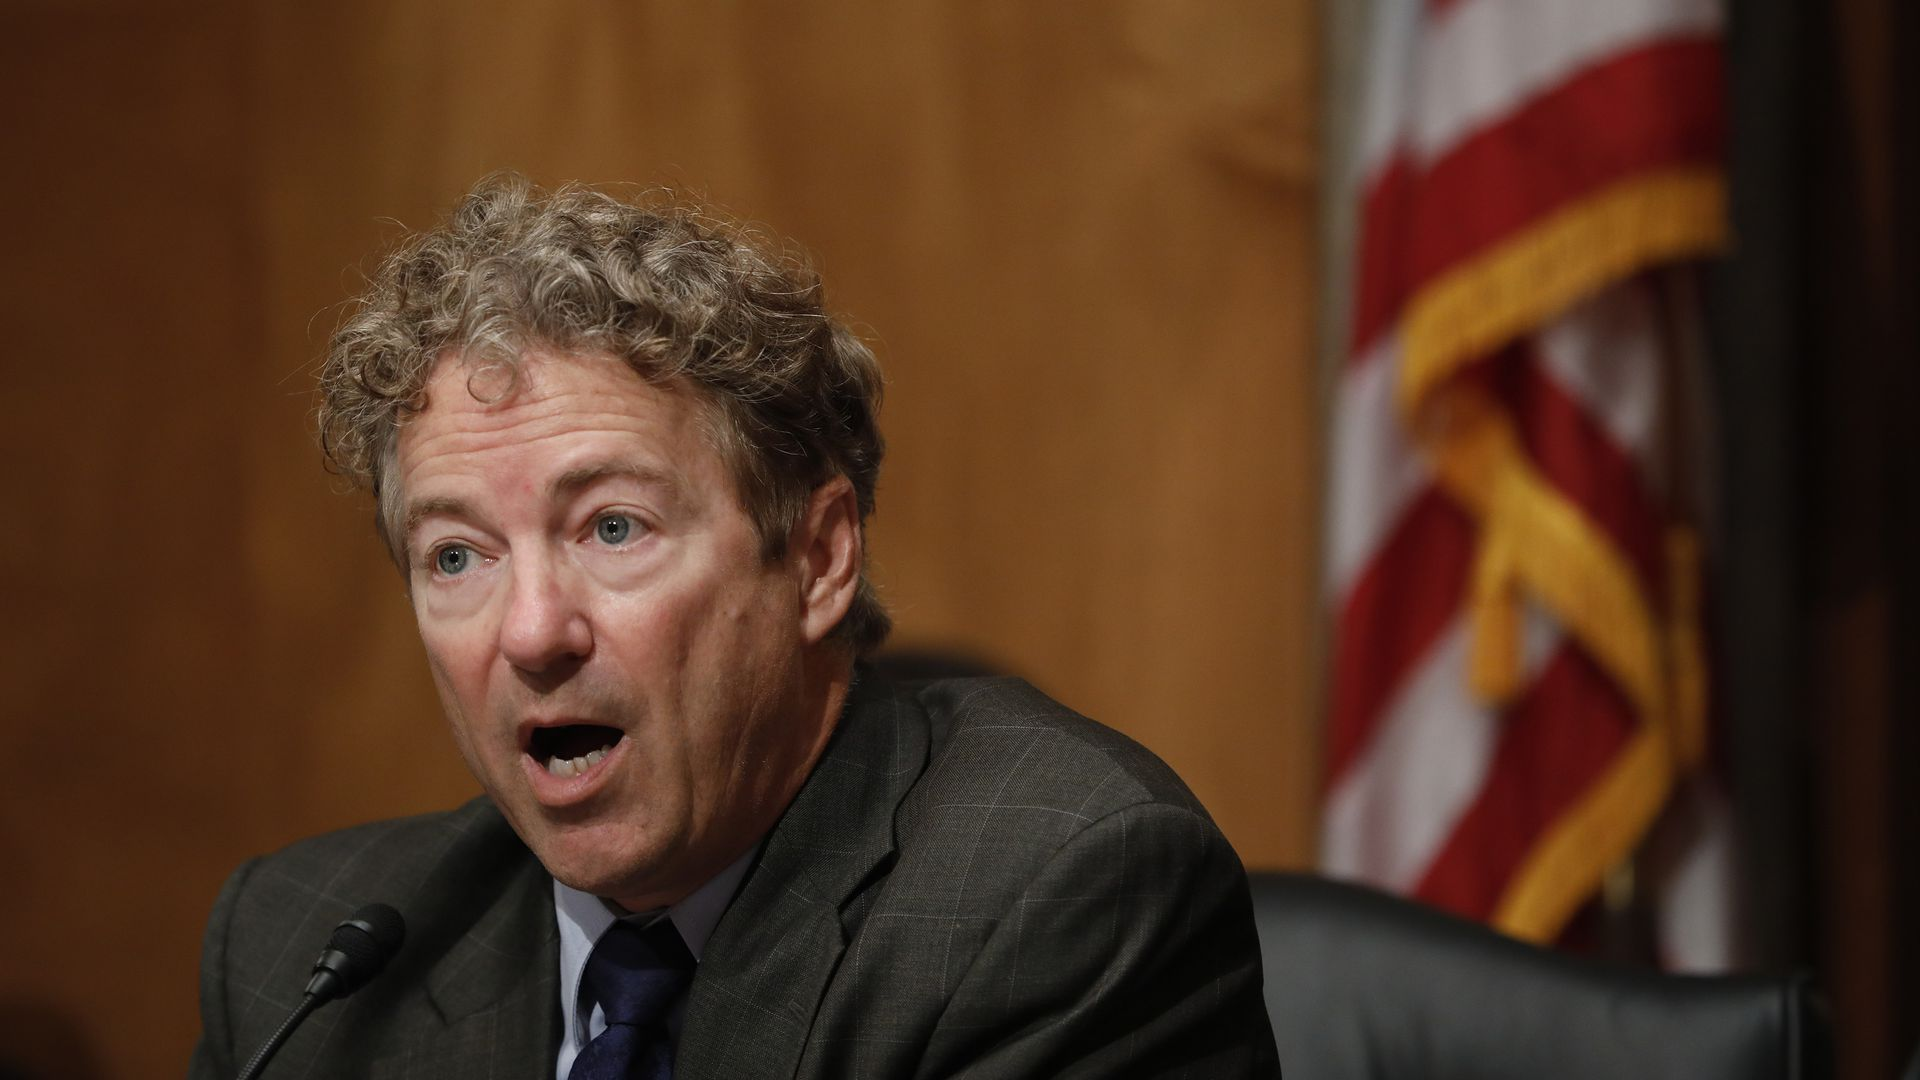 Senator Rand Paul speaking at a hearing.